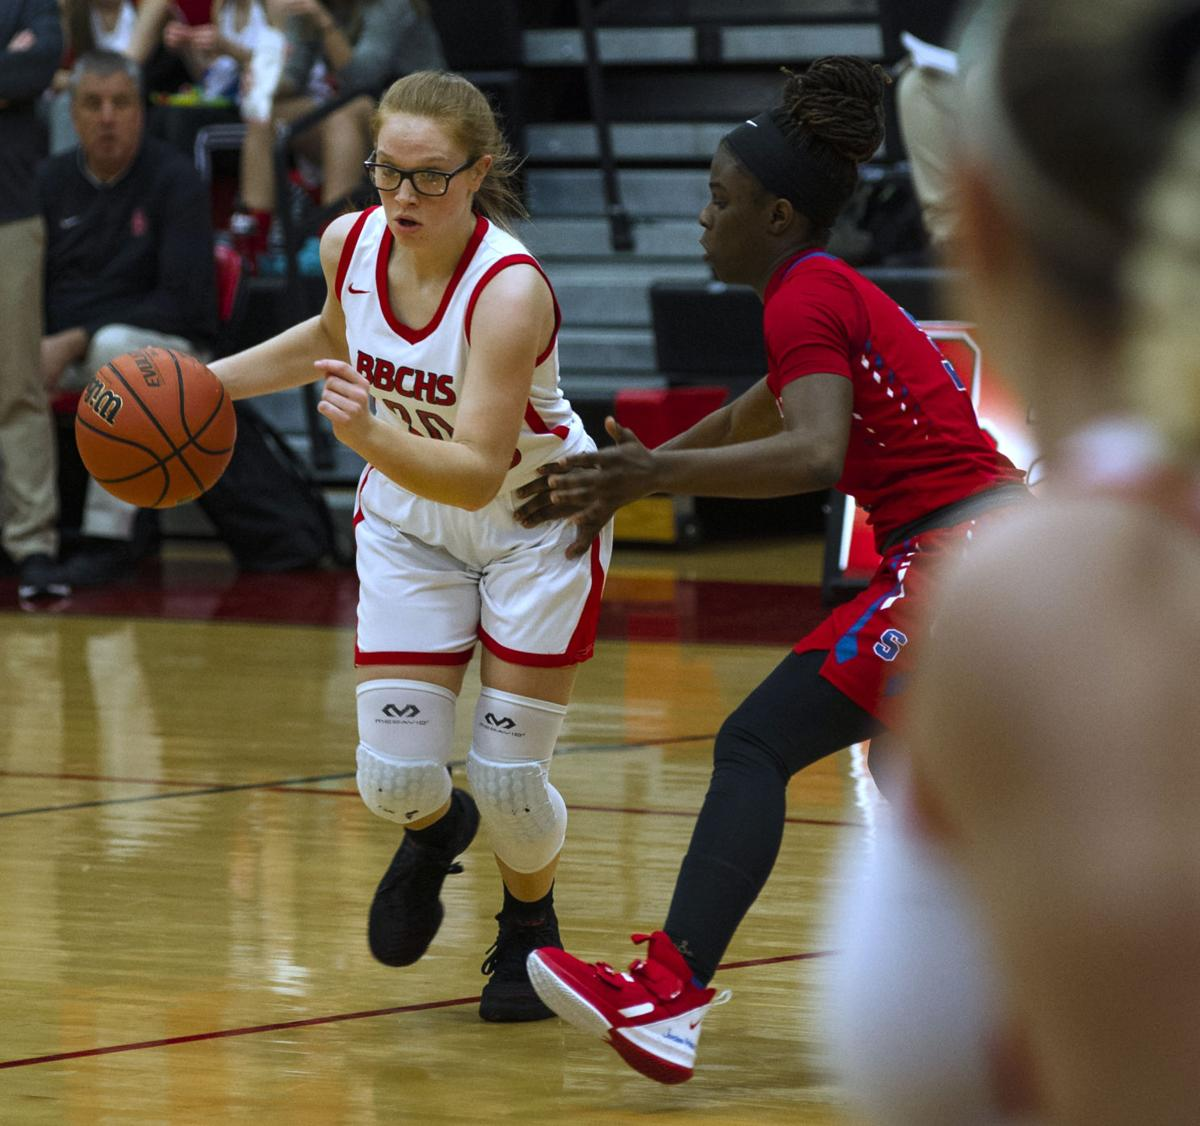 BBCHS/Rich South Girls Basketball